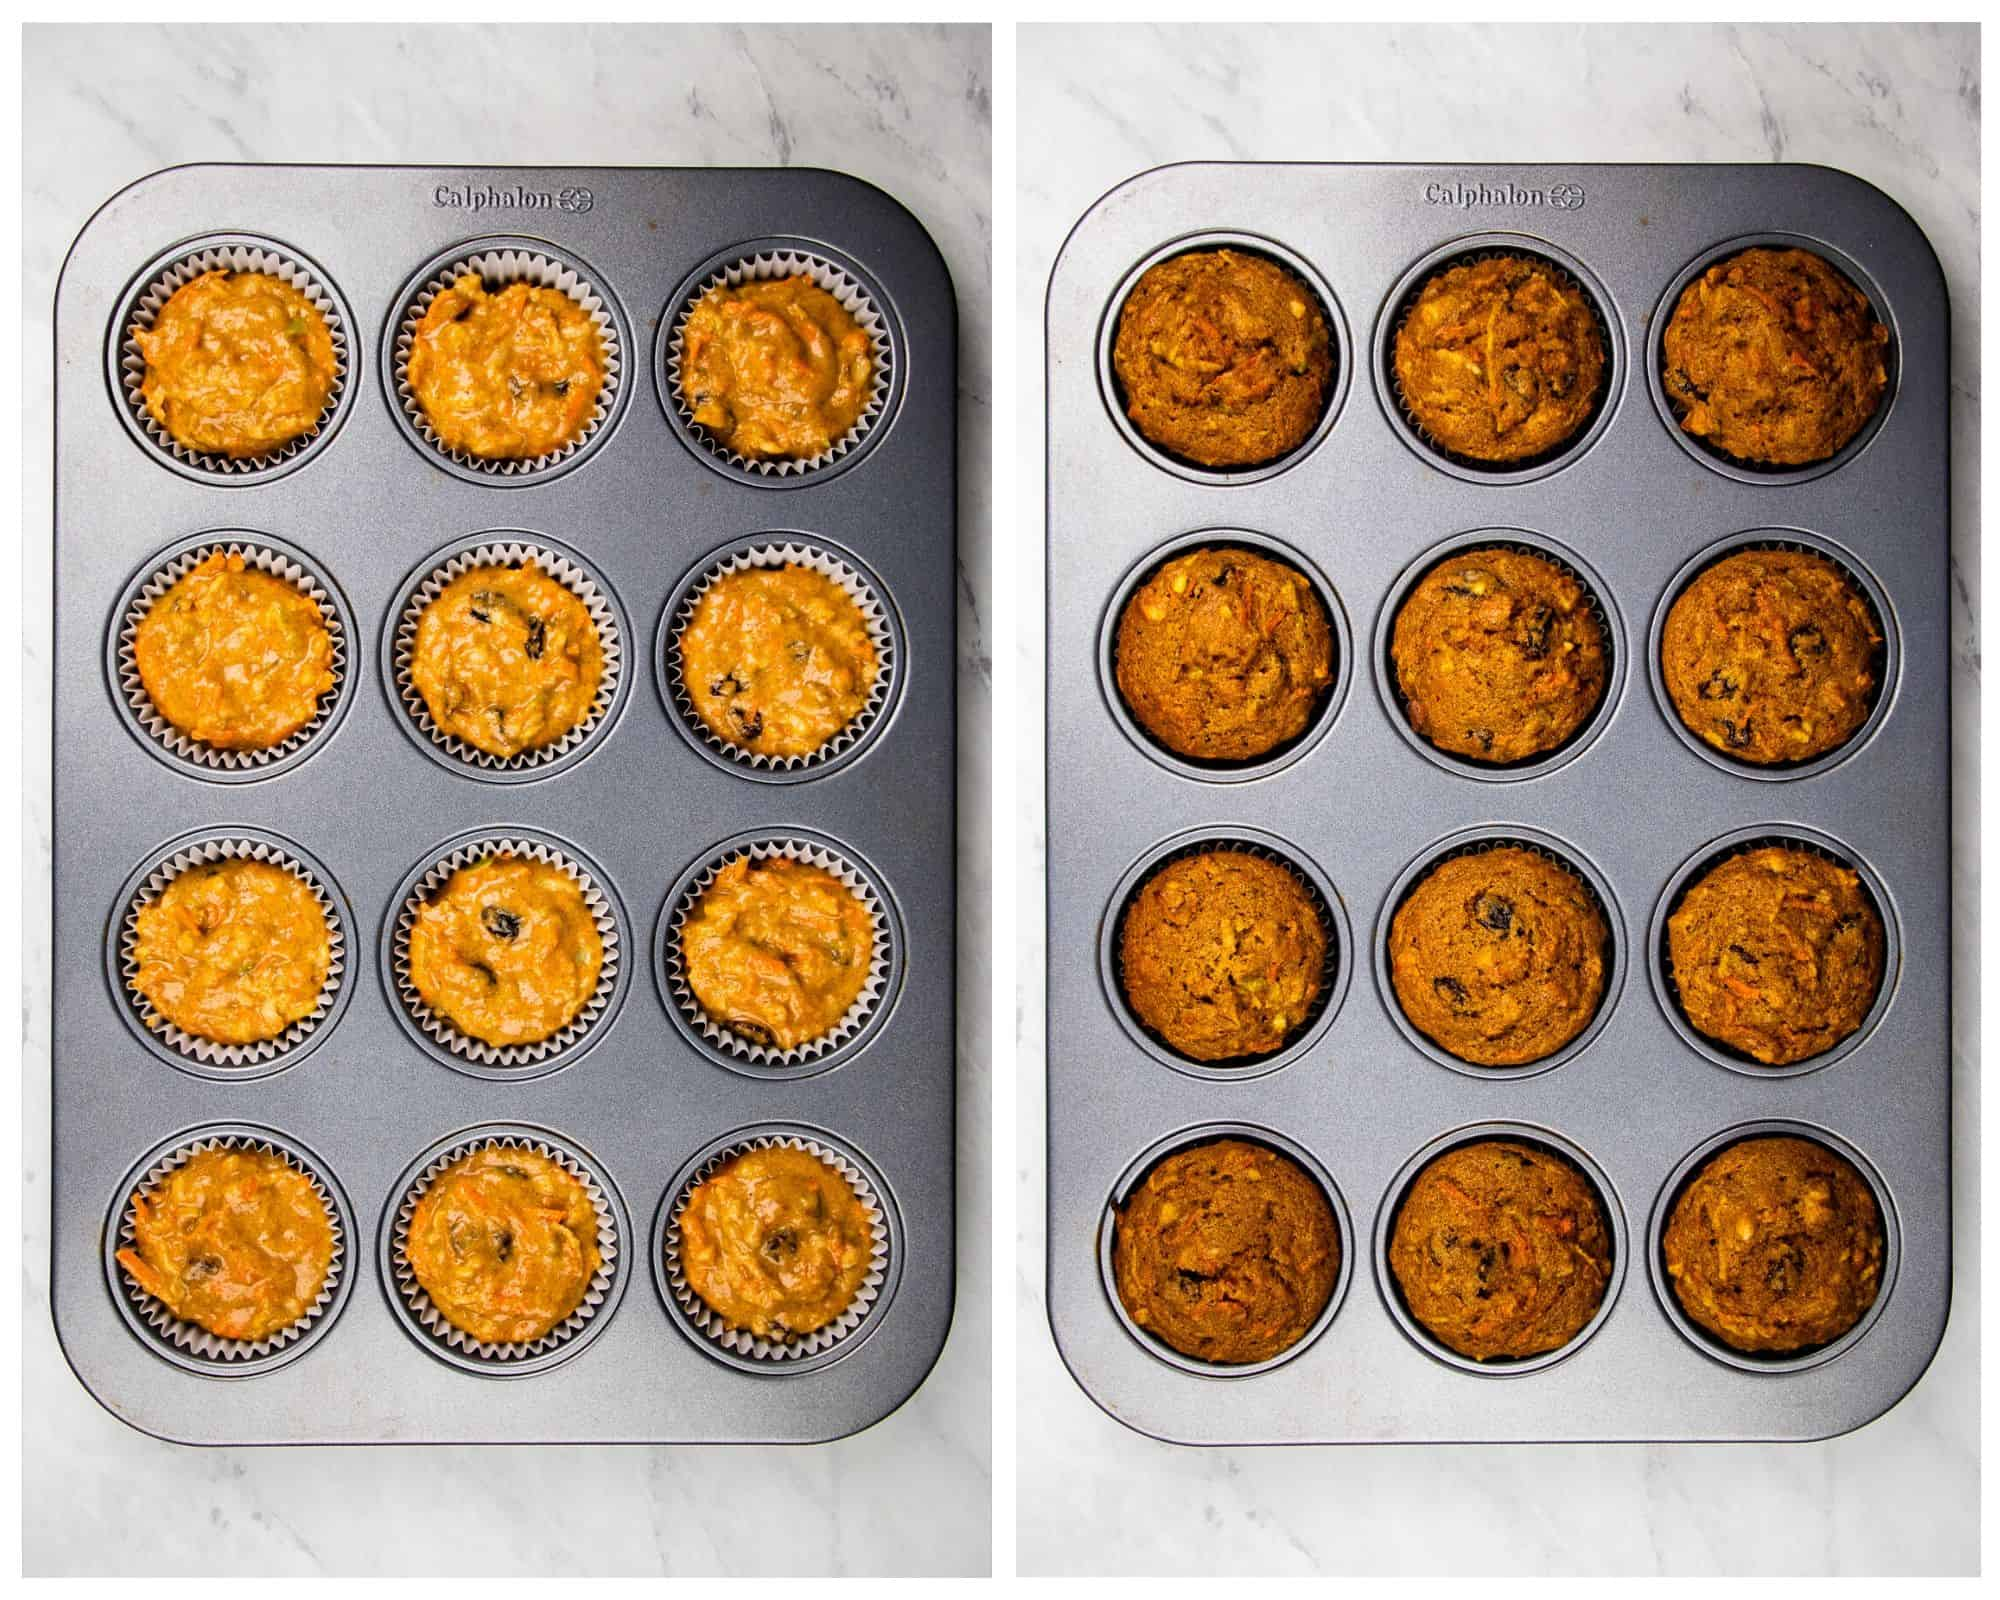 Morning Glory Muffins in a muffins pan before and after baking.